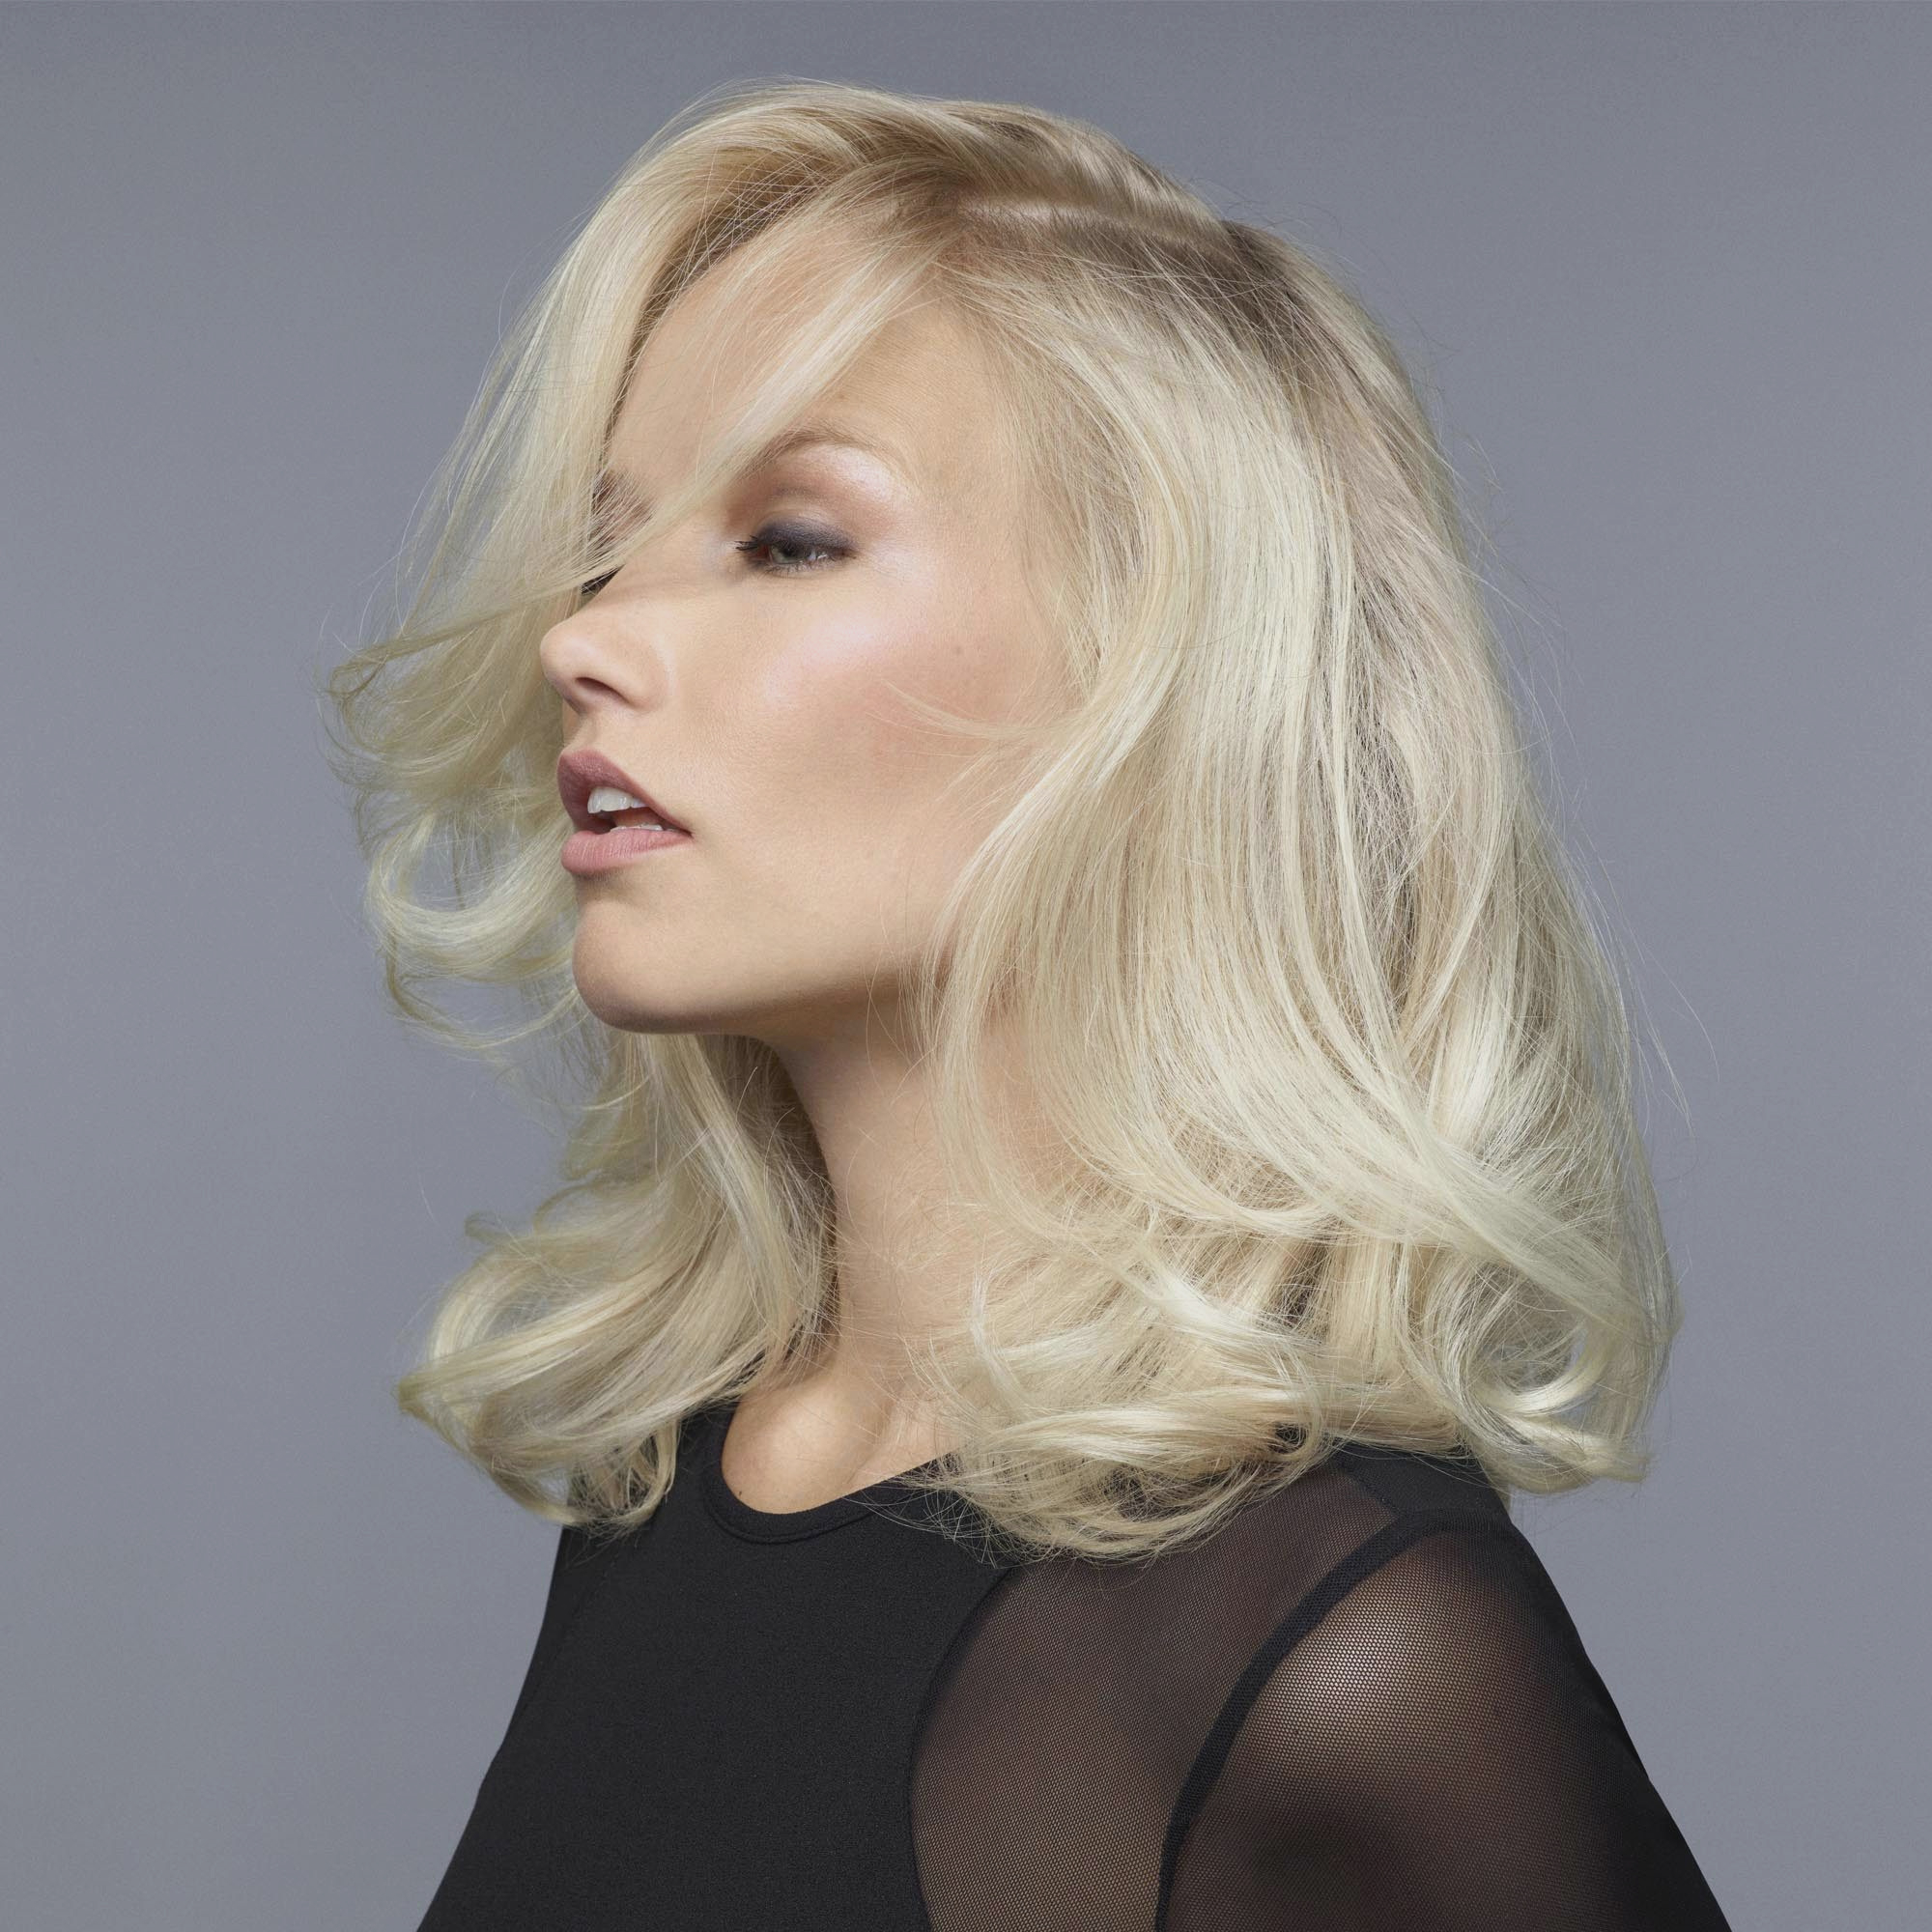 Short Hairstyles : View Short Hairstyles With One Side Shaved Home Intended For Short Haircuts With One Side Shaved (View 21 of 25)